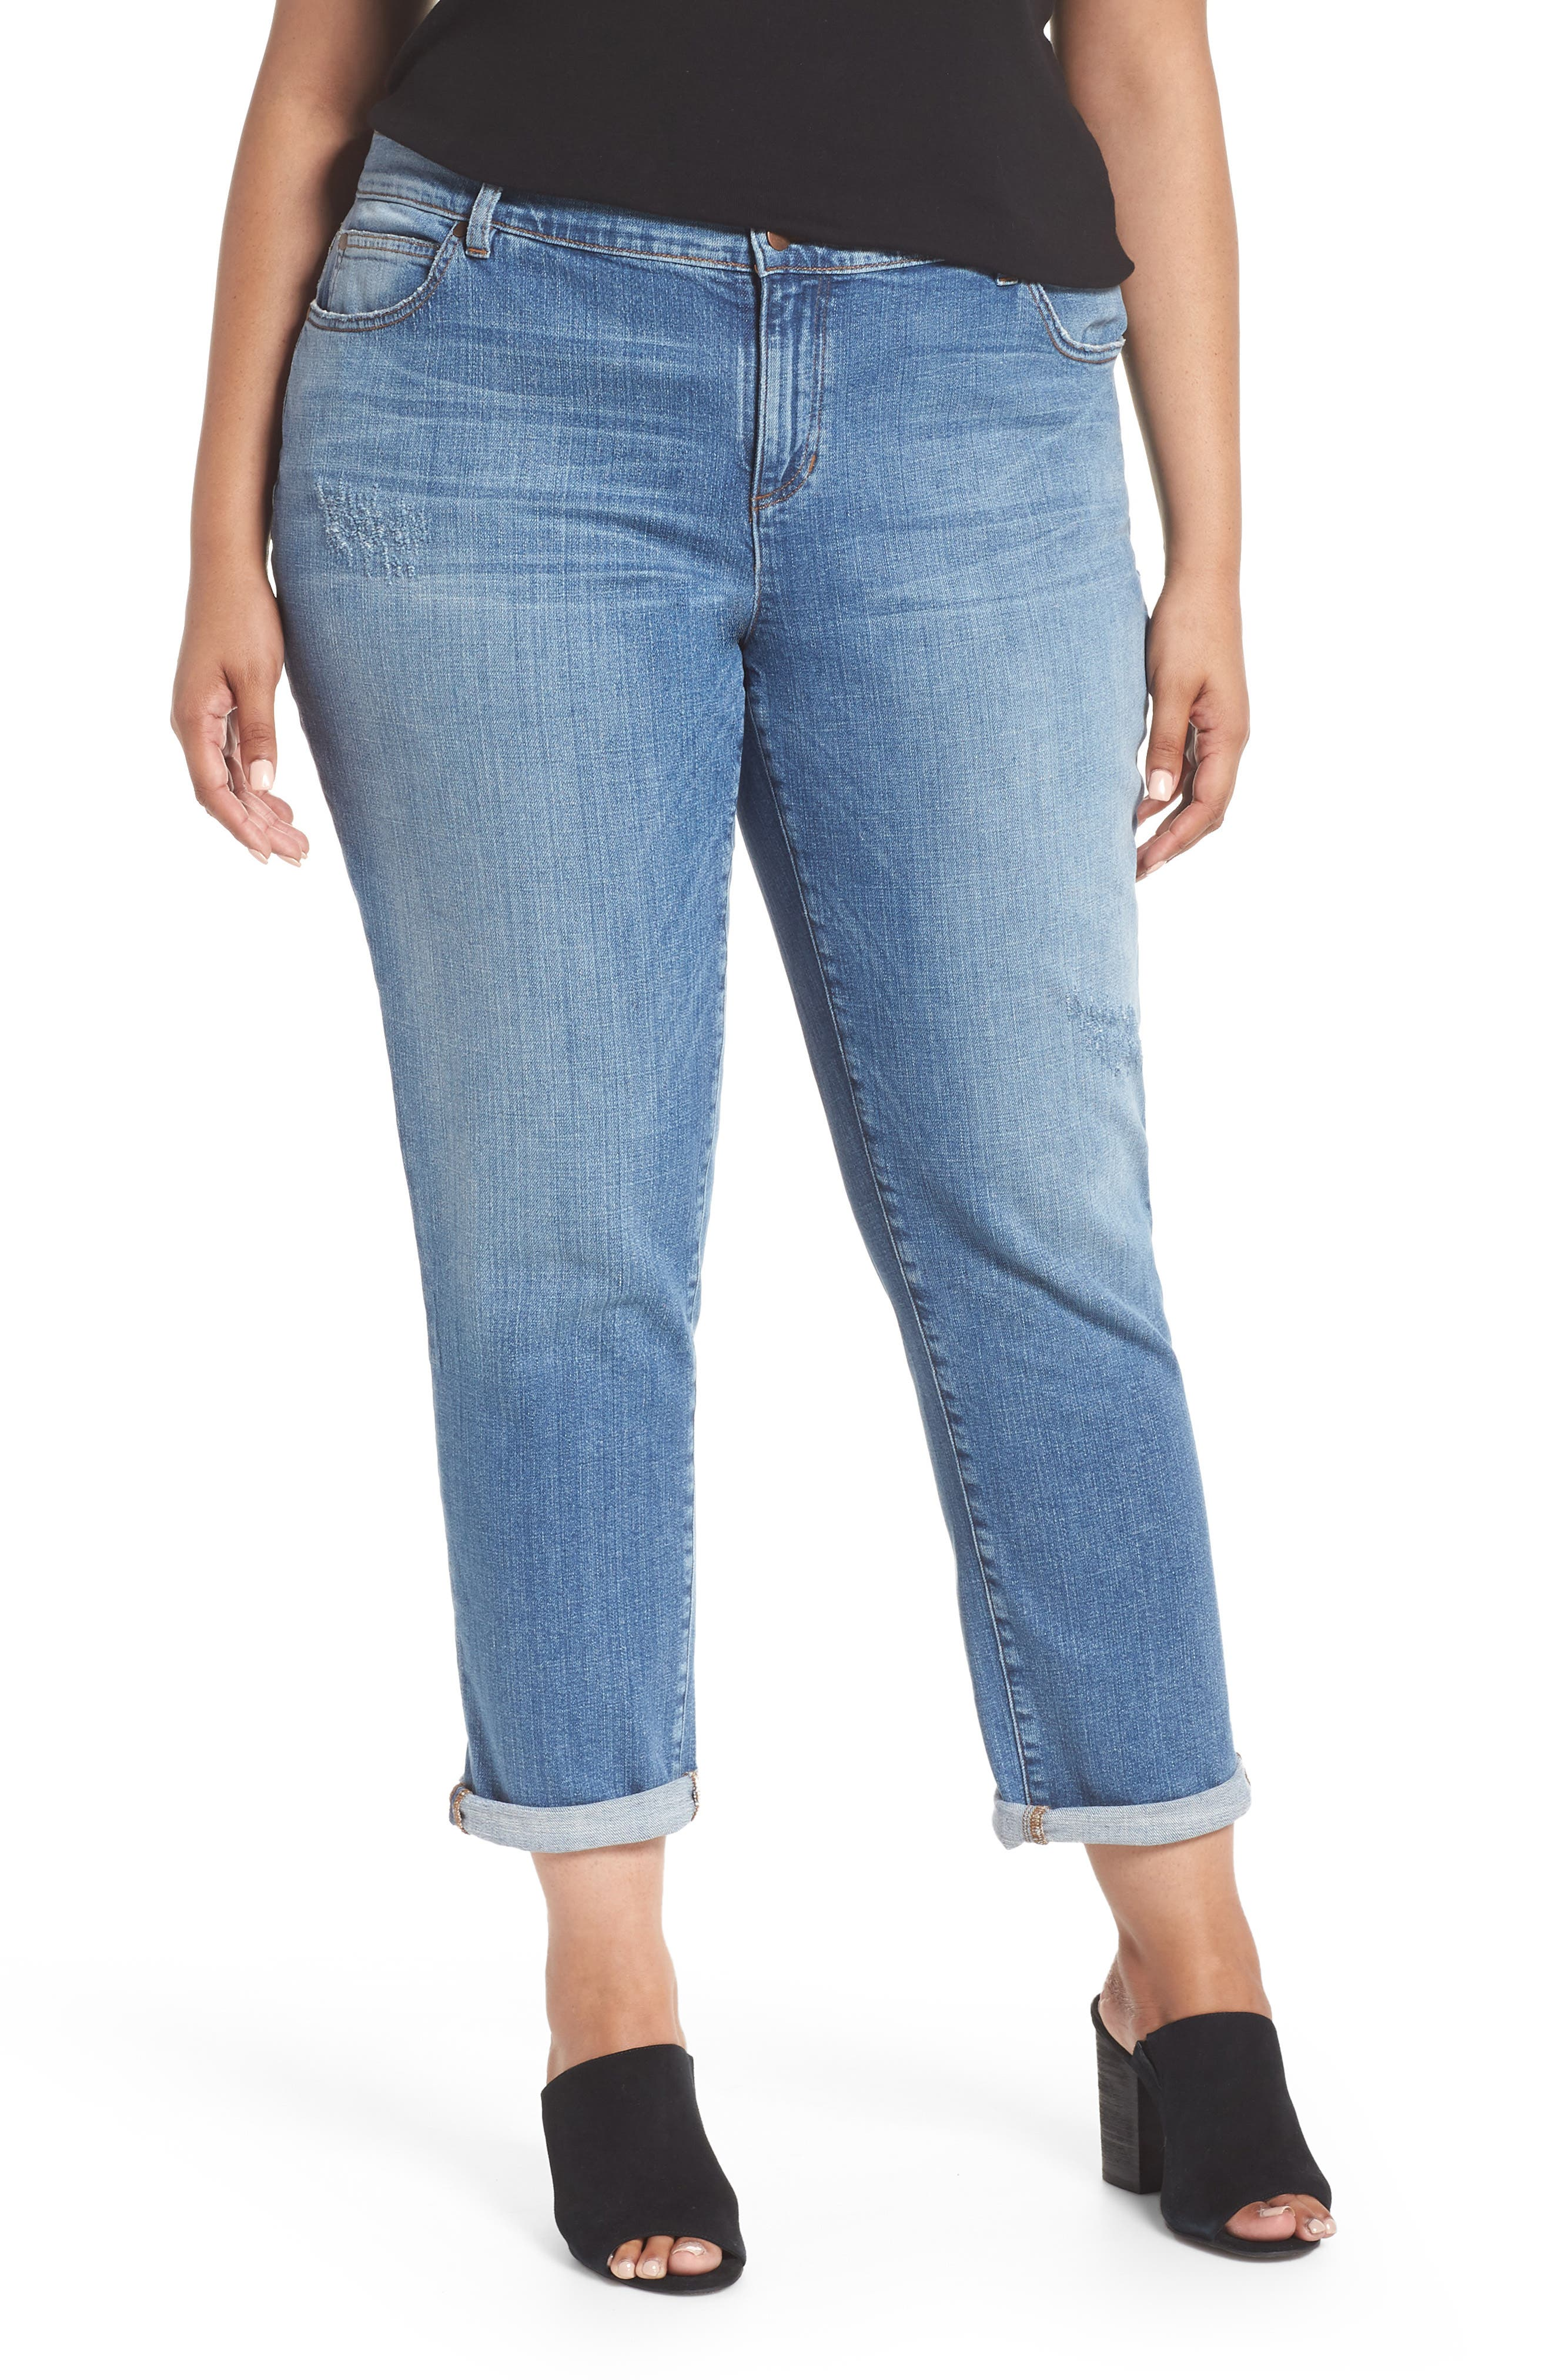 EILEEN FISHER Stretch Organic Cotton Boyfriend Jeans, Main, color, ABRADED SKY BLUE